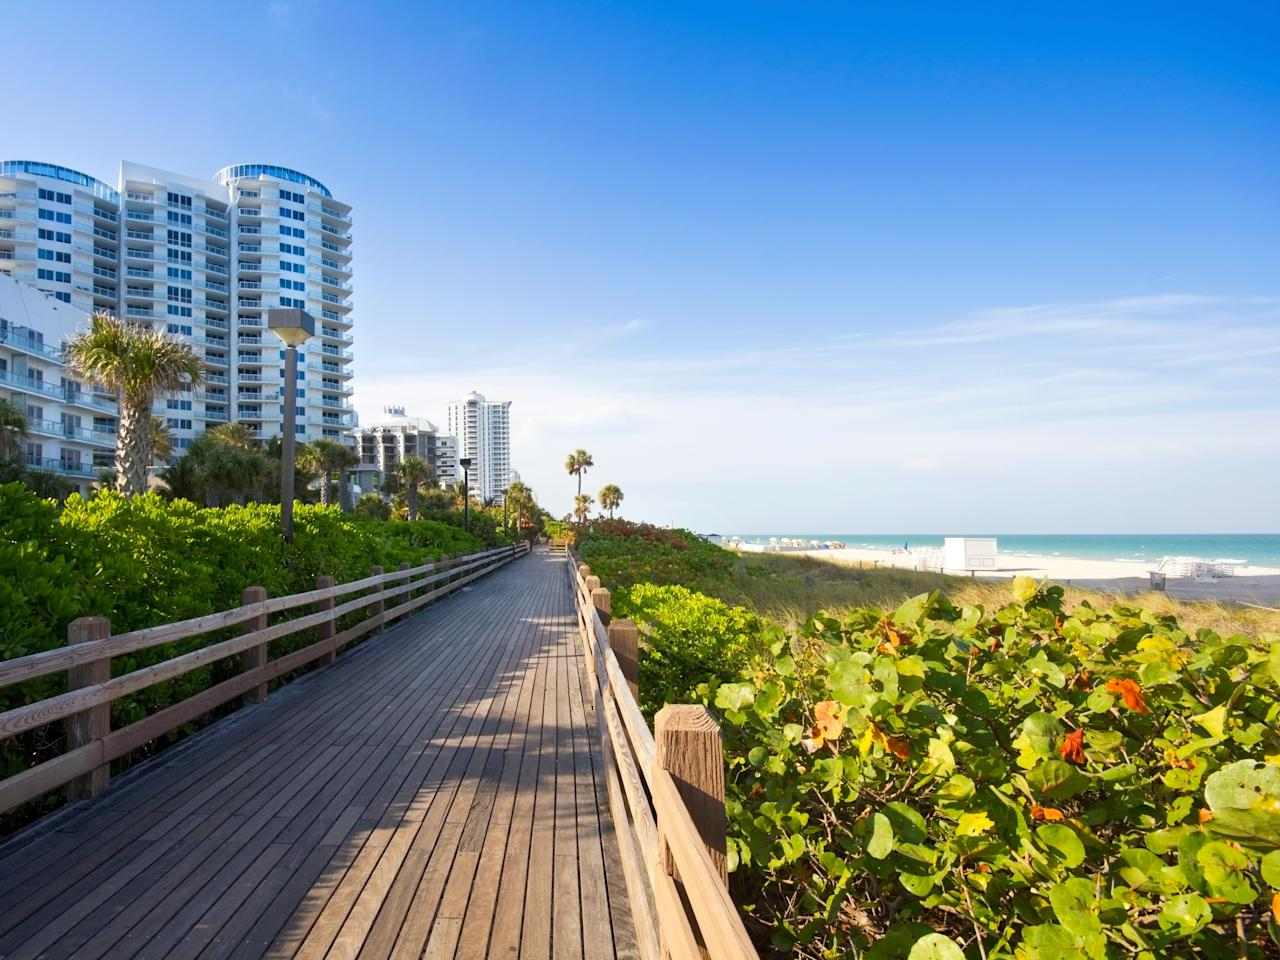 """<p>A raised boardwalk separates the beach from hotel-lined Collins Avenue between 23rd Street and 46th Street, an area collectively referred to as Mid-Beach. Home to Miami's most stylish hotels, like the <a href=""""https://www.cntraveler.com/hotels/miami-beach/the-miami-beach-edition?mbid=synd_yahoo_rss"""" target=""""_blank"""">Miami Beach Edition</a>, <a href=""""https://www.cntraveler.com/hotels/miami-beach/faena-hotel-miami-beach?mbid=synd_yahoo_rss"""" target=""""_blank"""">Faena Hotel Miami Beach</a>, and <a href=""""https://www.cntraveler.com/hotels/united-states/miami-beach/soho-beach-house?mbid=synd_yahoo_rss"""" target=""""_blank"""">Soho Beach House</a>, this area caters to a cool crowd that considers South Beach passé.</p> <p><strong>Who it's best for:</strong> Fashionistas, trendsetters, and those who like to chill and drink at hotel beach clubs</p> <p><strong>The vibe:</strong> A lounge-y atmosphere that goes from day to night, given the prolific beach and pool clubs to choose from</p> <p><strong>Where to stay:</strong> Check into the <a href=""""https://www.cntraveler.com/hotels/miami-beach/the-miami-beach-edition?mbid=synd_yahoo_rss"""" target=""""_blank"""">Miami Beach Edition</a>, an Ian Schrager–backed reinvention of the 1955 Seville Hotel, with an Old Havana–inspired palm-fringed lobby, a slick pool area, and, of course, the beach.</p>"""